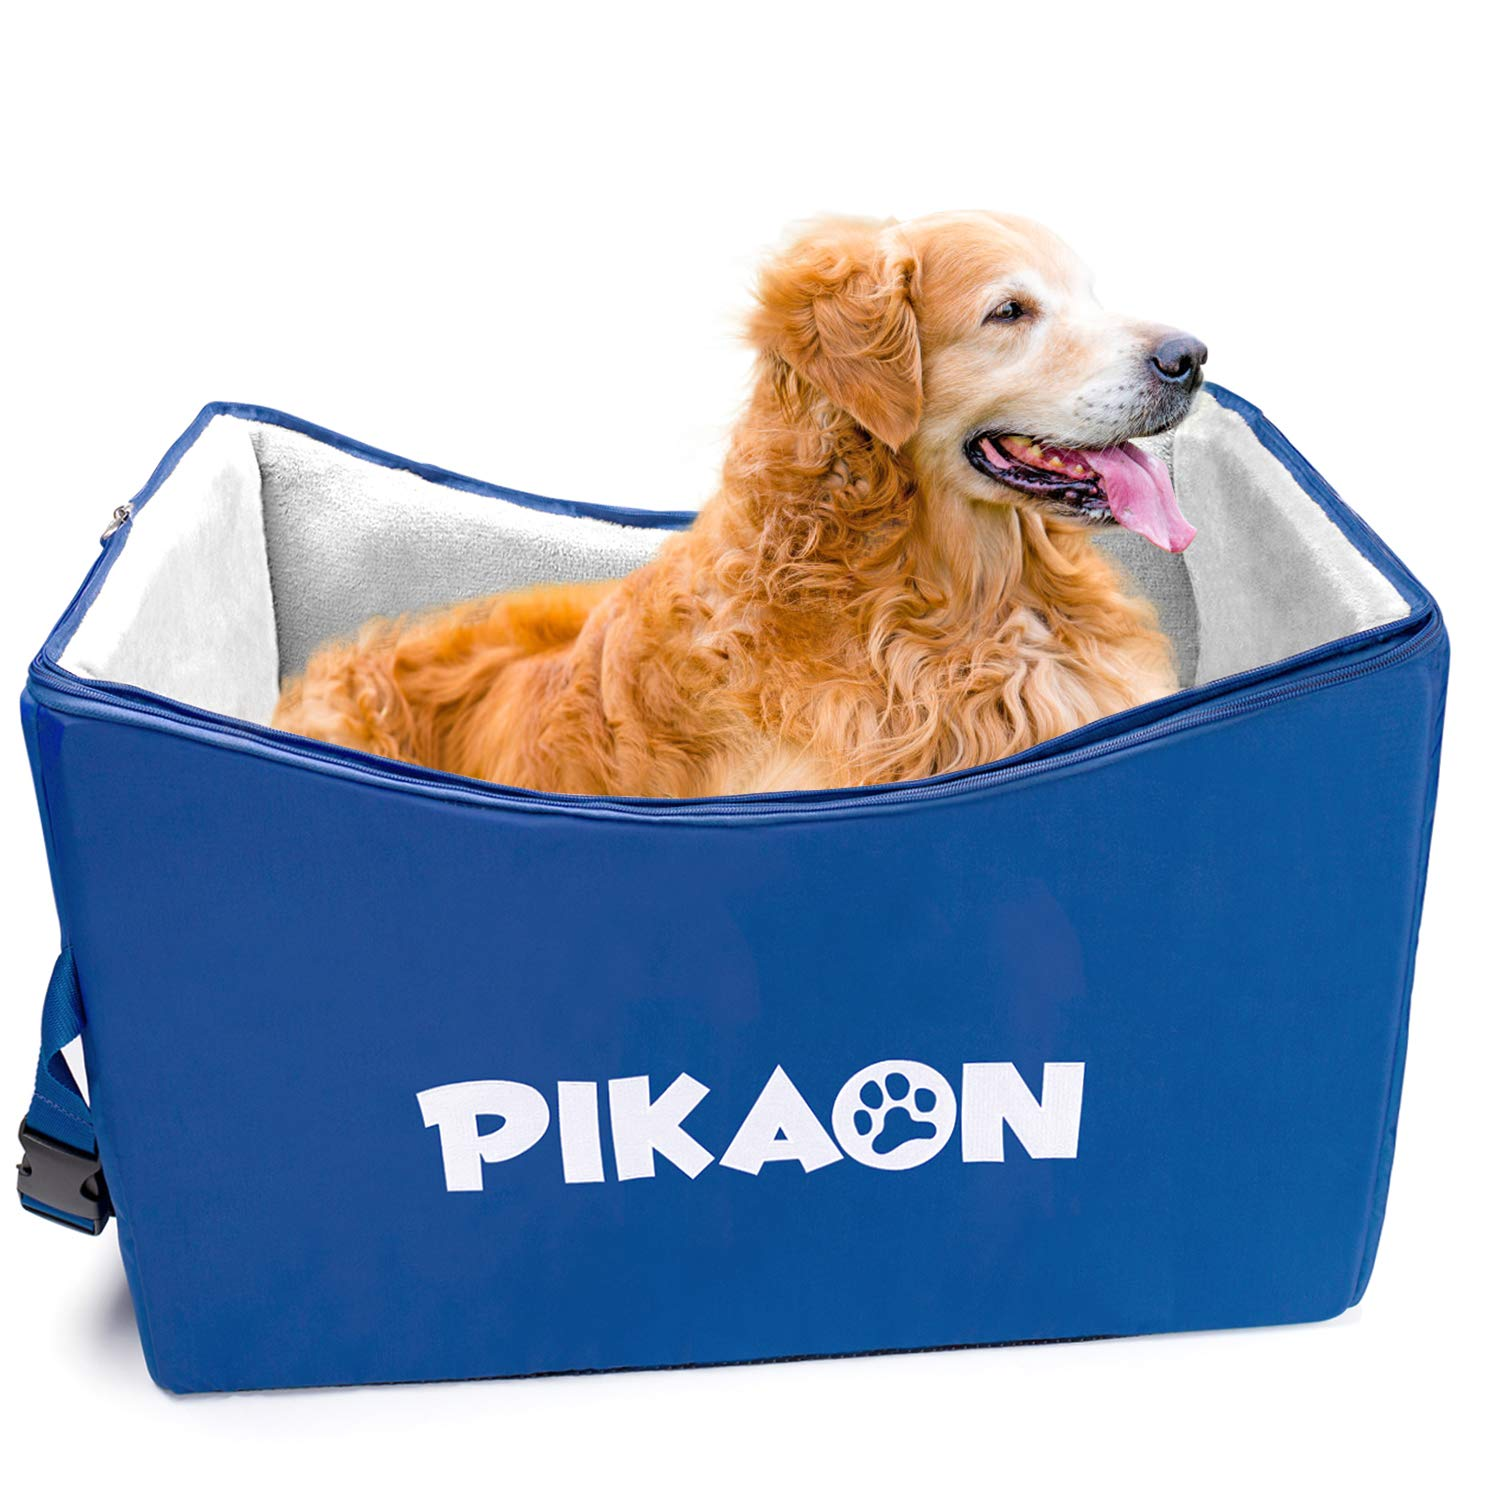 Pikaon Dog Booster Car Seat, Safety Upgraded Pet Lookout Seat, Cold and Hot Weather Use by Pikaon